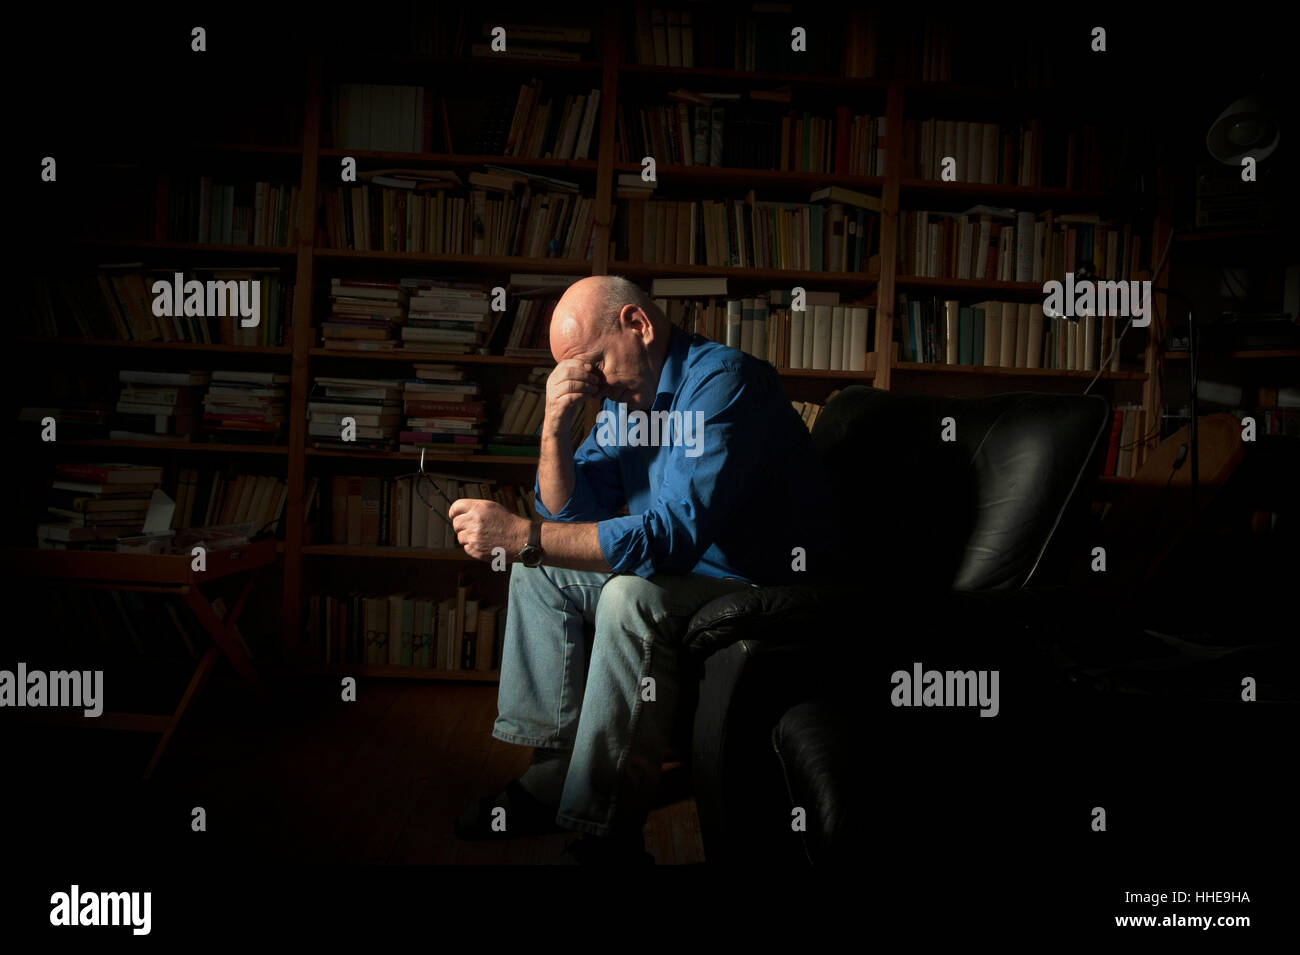 An older man suffering from depression/anxiety/sadness. - Stock Image